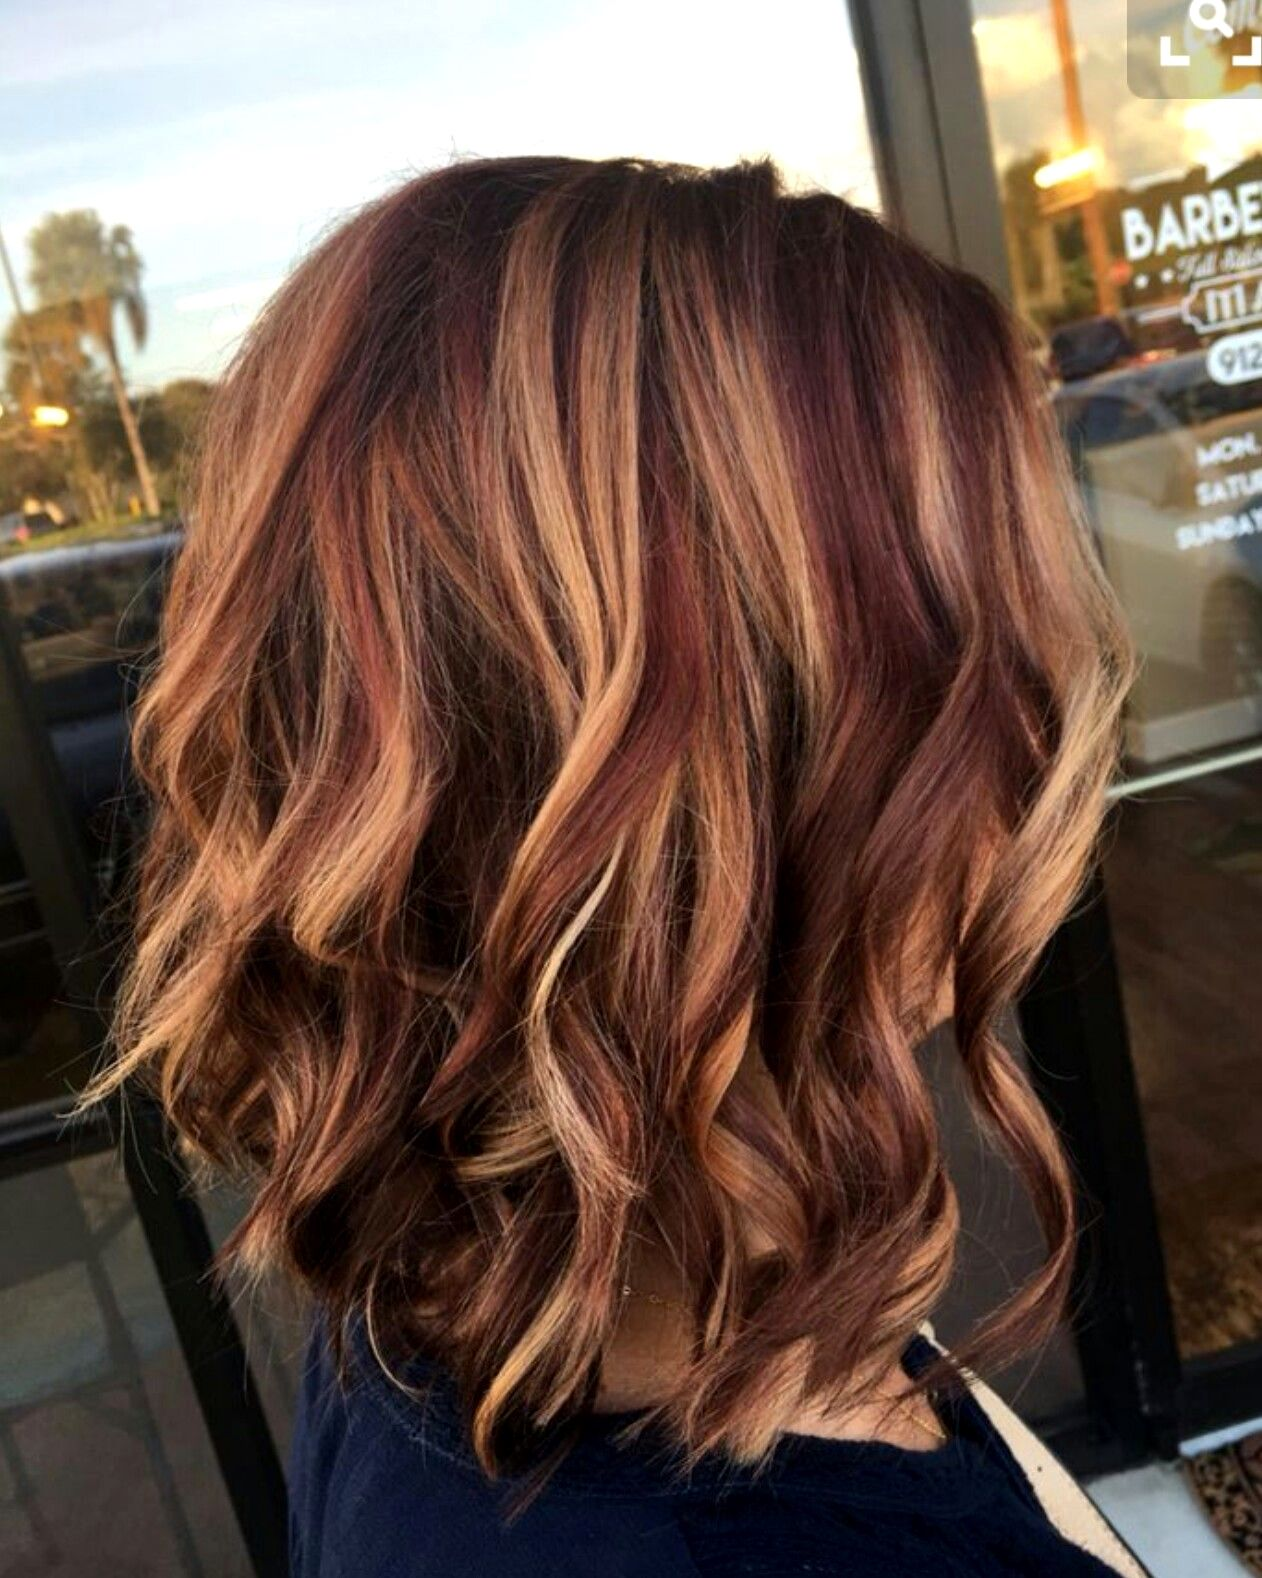 30 Beautiful Fall Blonde Hair Ideas To Inspire In 2020 Red Highlights In Brown Hair Light Brown Hair Auburn Balayage